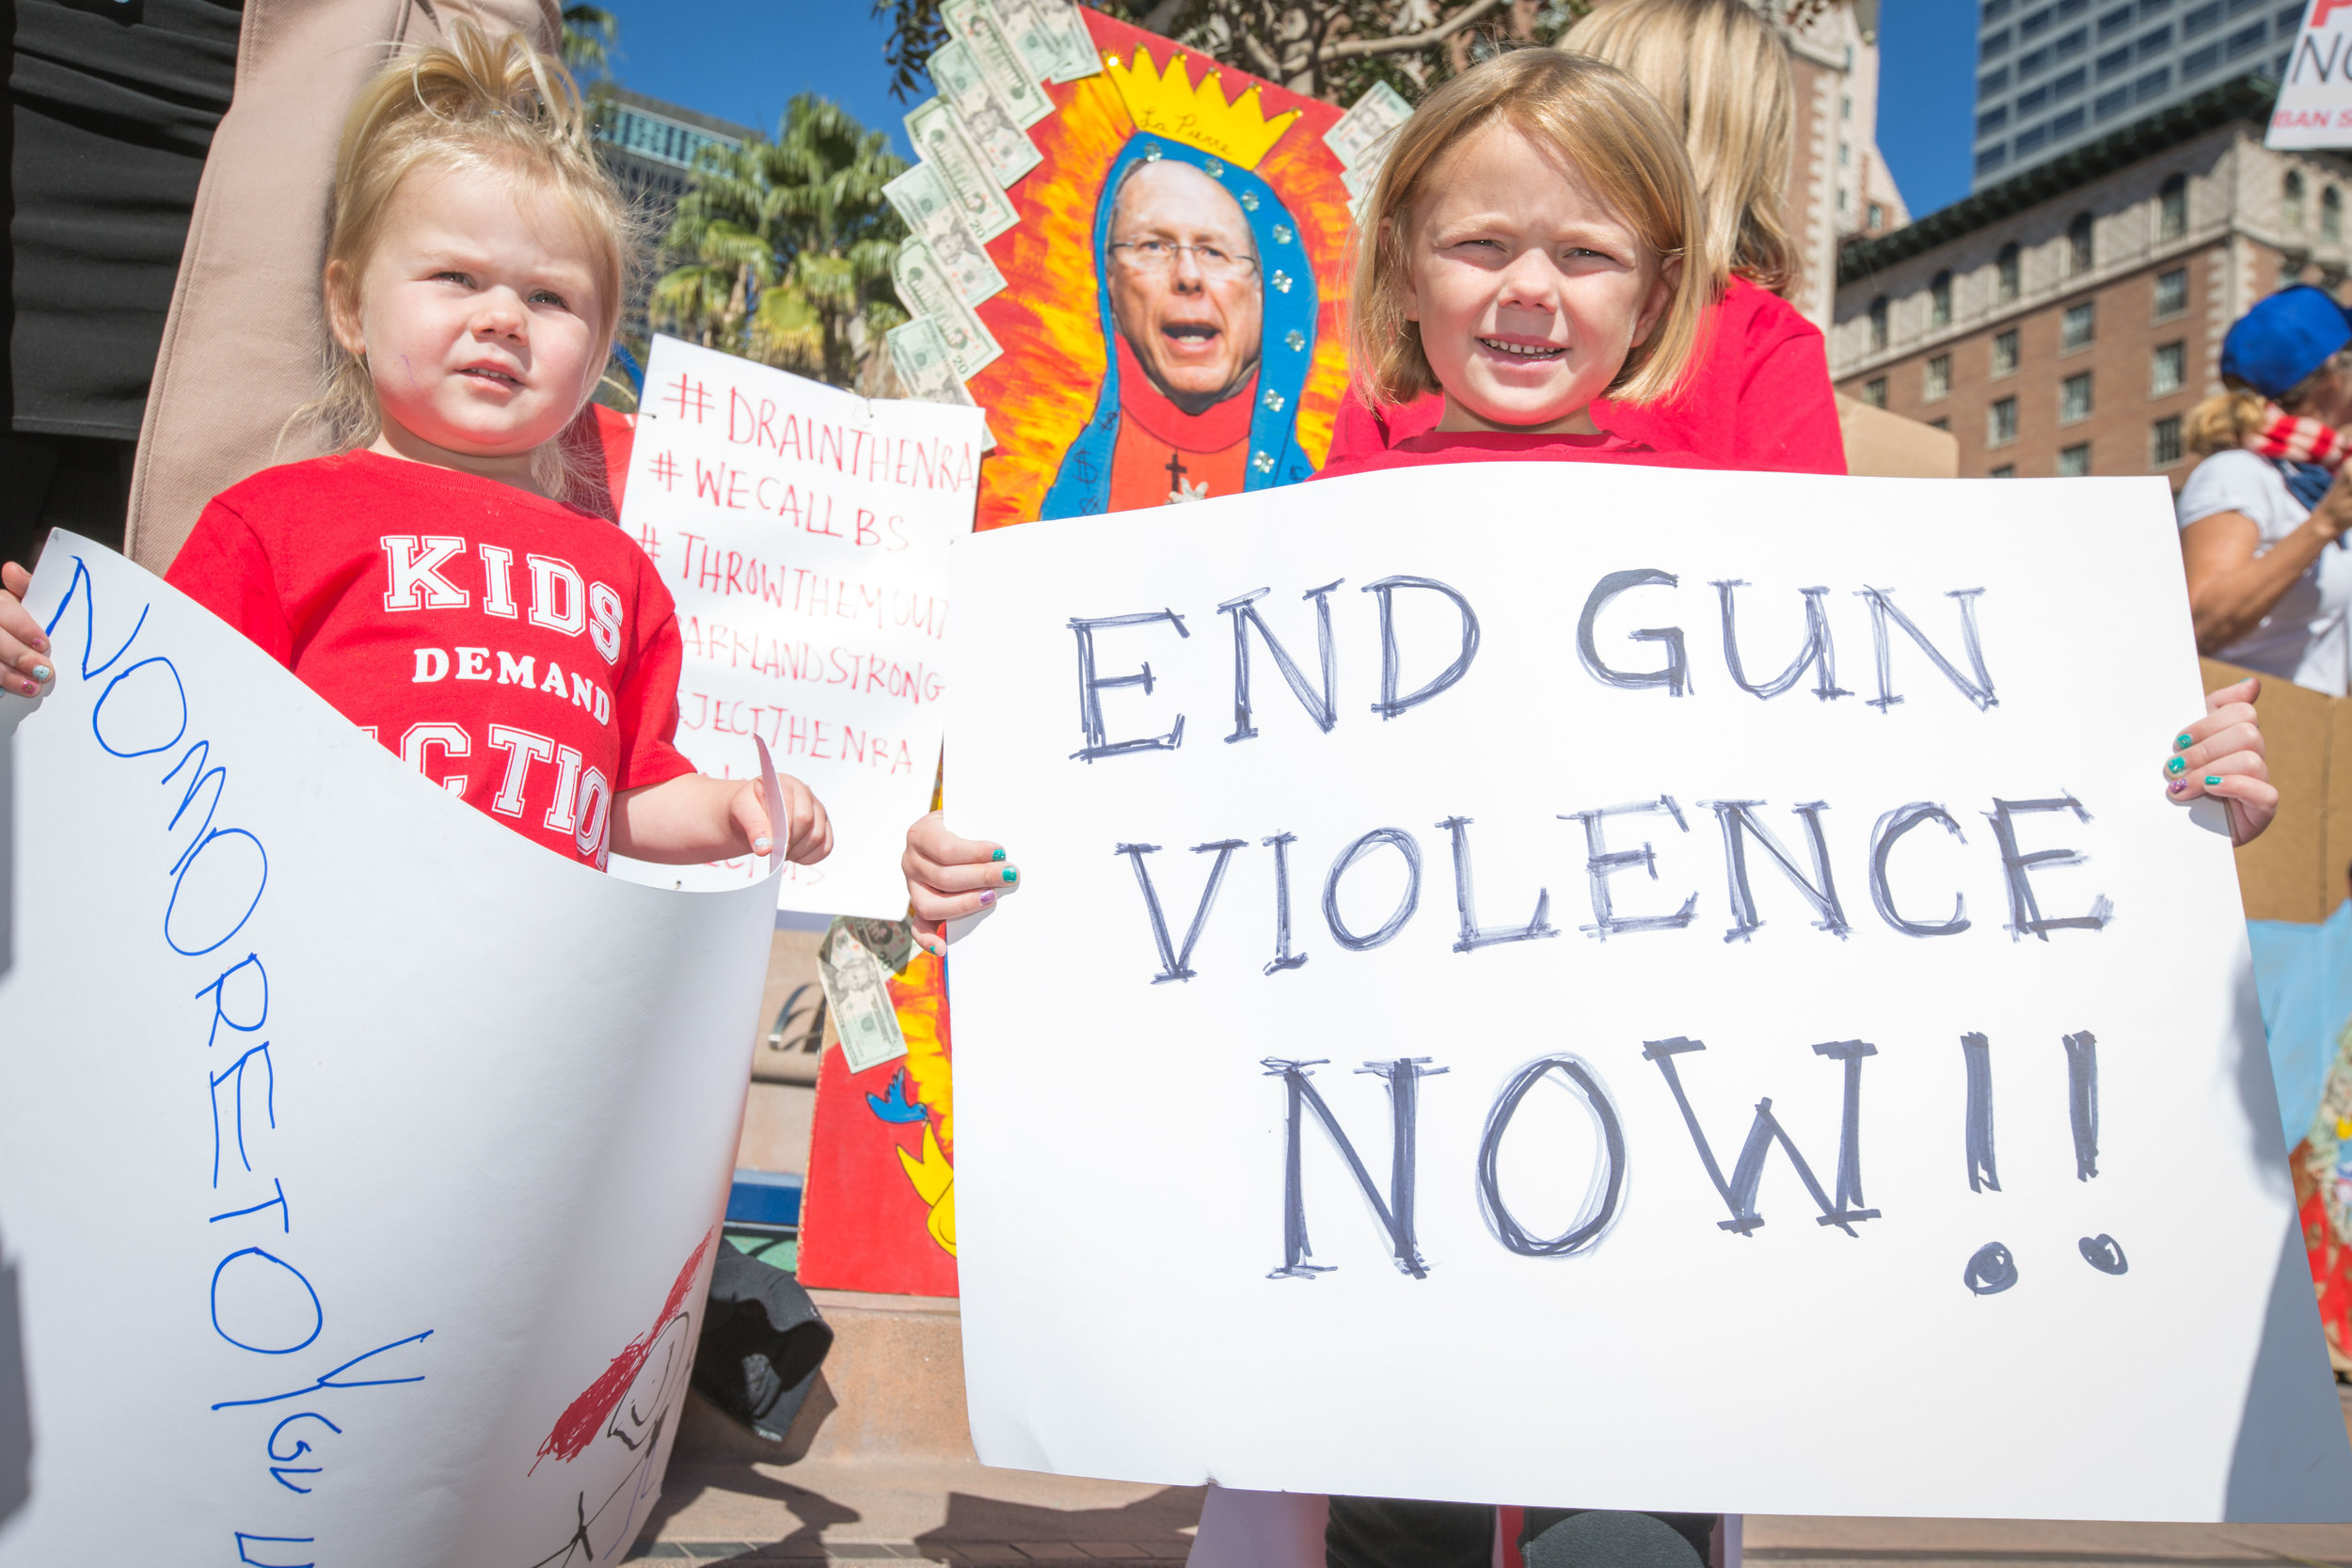 Hundreds of peaceful protestors gathered in Downtown Los Angeles, while some parents brought their children, most holding signs, as speakers took to the podium to talk about stricter gun control laws in the U.S. on Monday February 19, 2018. Pershing Square, Los Angeles Calif.. (Photo By: Daniel Bowyer)